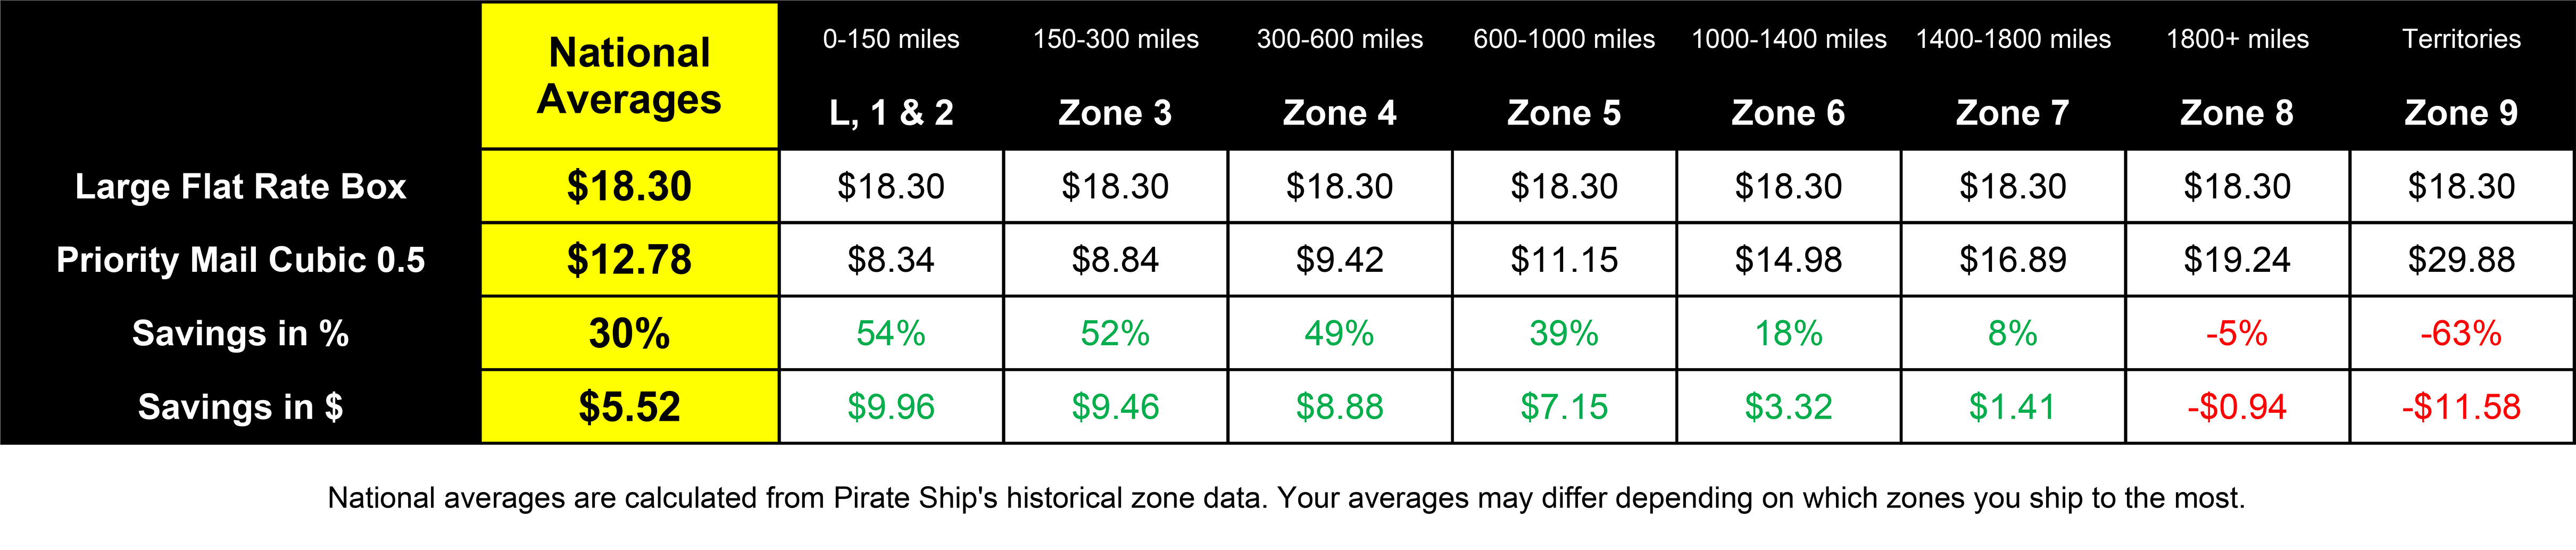 A screenshot of a chart showing a rate comparison between Large Flat Rate Boxes and Priority Mail Cubic 0.5. Medium Flat Rate Boxes always costs $18.30, while Cubic 0.5 costs $12.78 on average. There is a 30% savings with Cubic, which is $5.52 on average. With local zones 1 and 2, Cubic 0.5 costs $8.34, which is a 54% savings, or a savings of $9.96. With zone 3, Cubic 0.5 costs $8.84, which is a 52% savings, or a savings of $9.46. With zone 4, Cubic 0.5 costs $9.42, which is a 49% savings, or a savings of $8.88. With zone 5, Cubic 0.5 costs $11.15, which is a 39% savings, or a savings of $7.15. With zone 6, Cubic 0.5 costs $14.98, which is a 18% savings, or a savings of $3.32. With zone 7, Cubic 0.5 costs $16.89, which is a 8% savings, or a savings of $1.41. With zone 8, Cubic 0.5 costs $19.24, which is a negative 5% savings, or an increase of $0.94. With zone 9, Cubic 0.5 costs $29.88, which is a negative 63% savings, or an increase of $11.58.